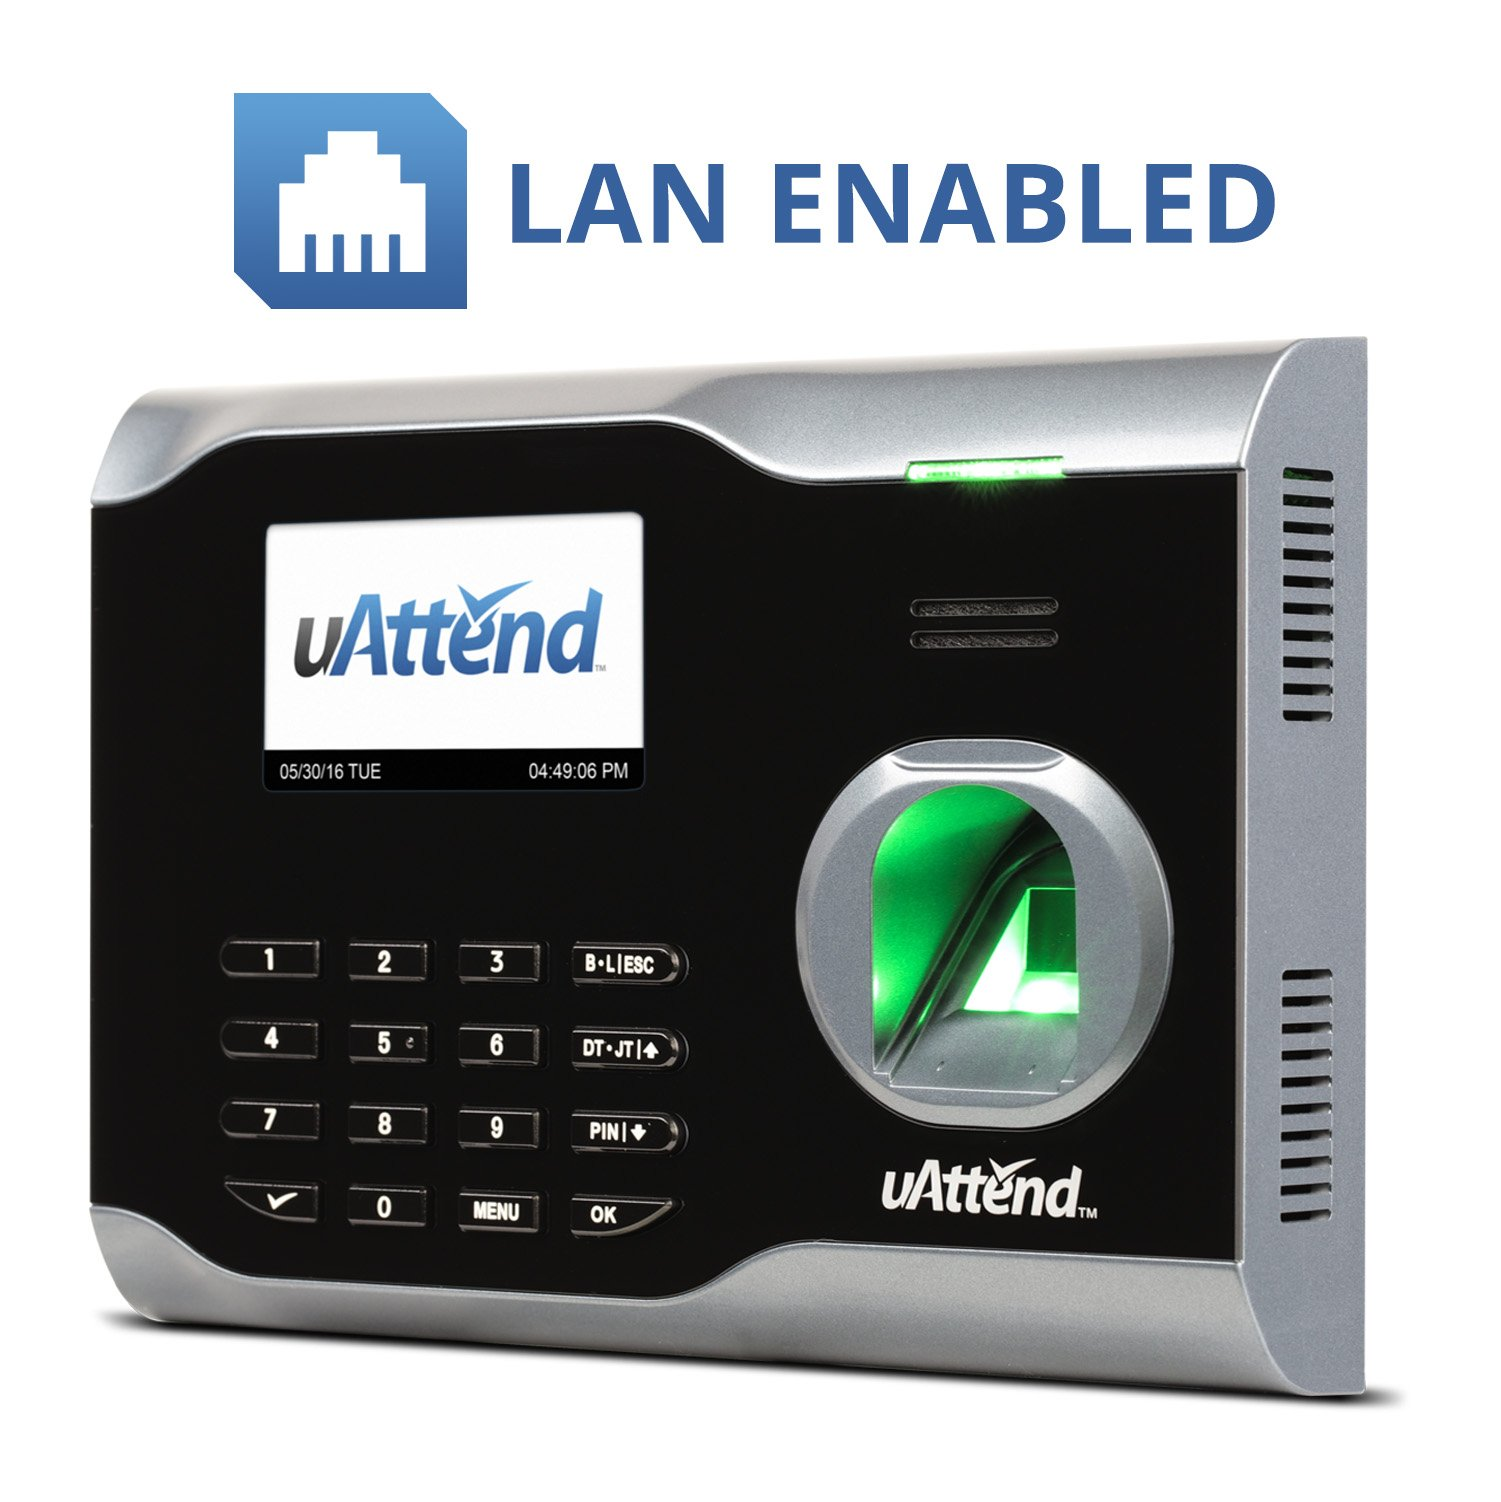 uAttend BN6000 Biometric Fingerprint Clock